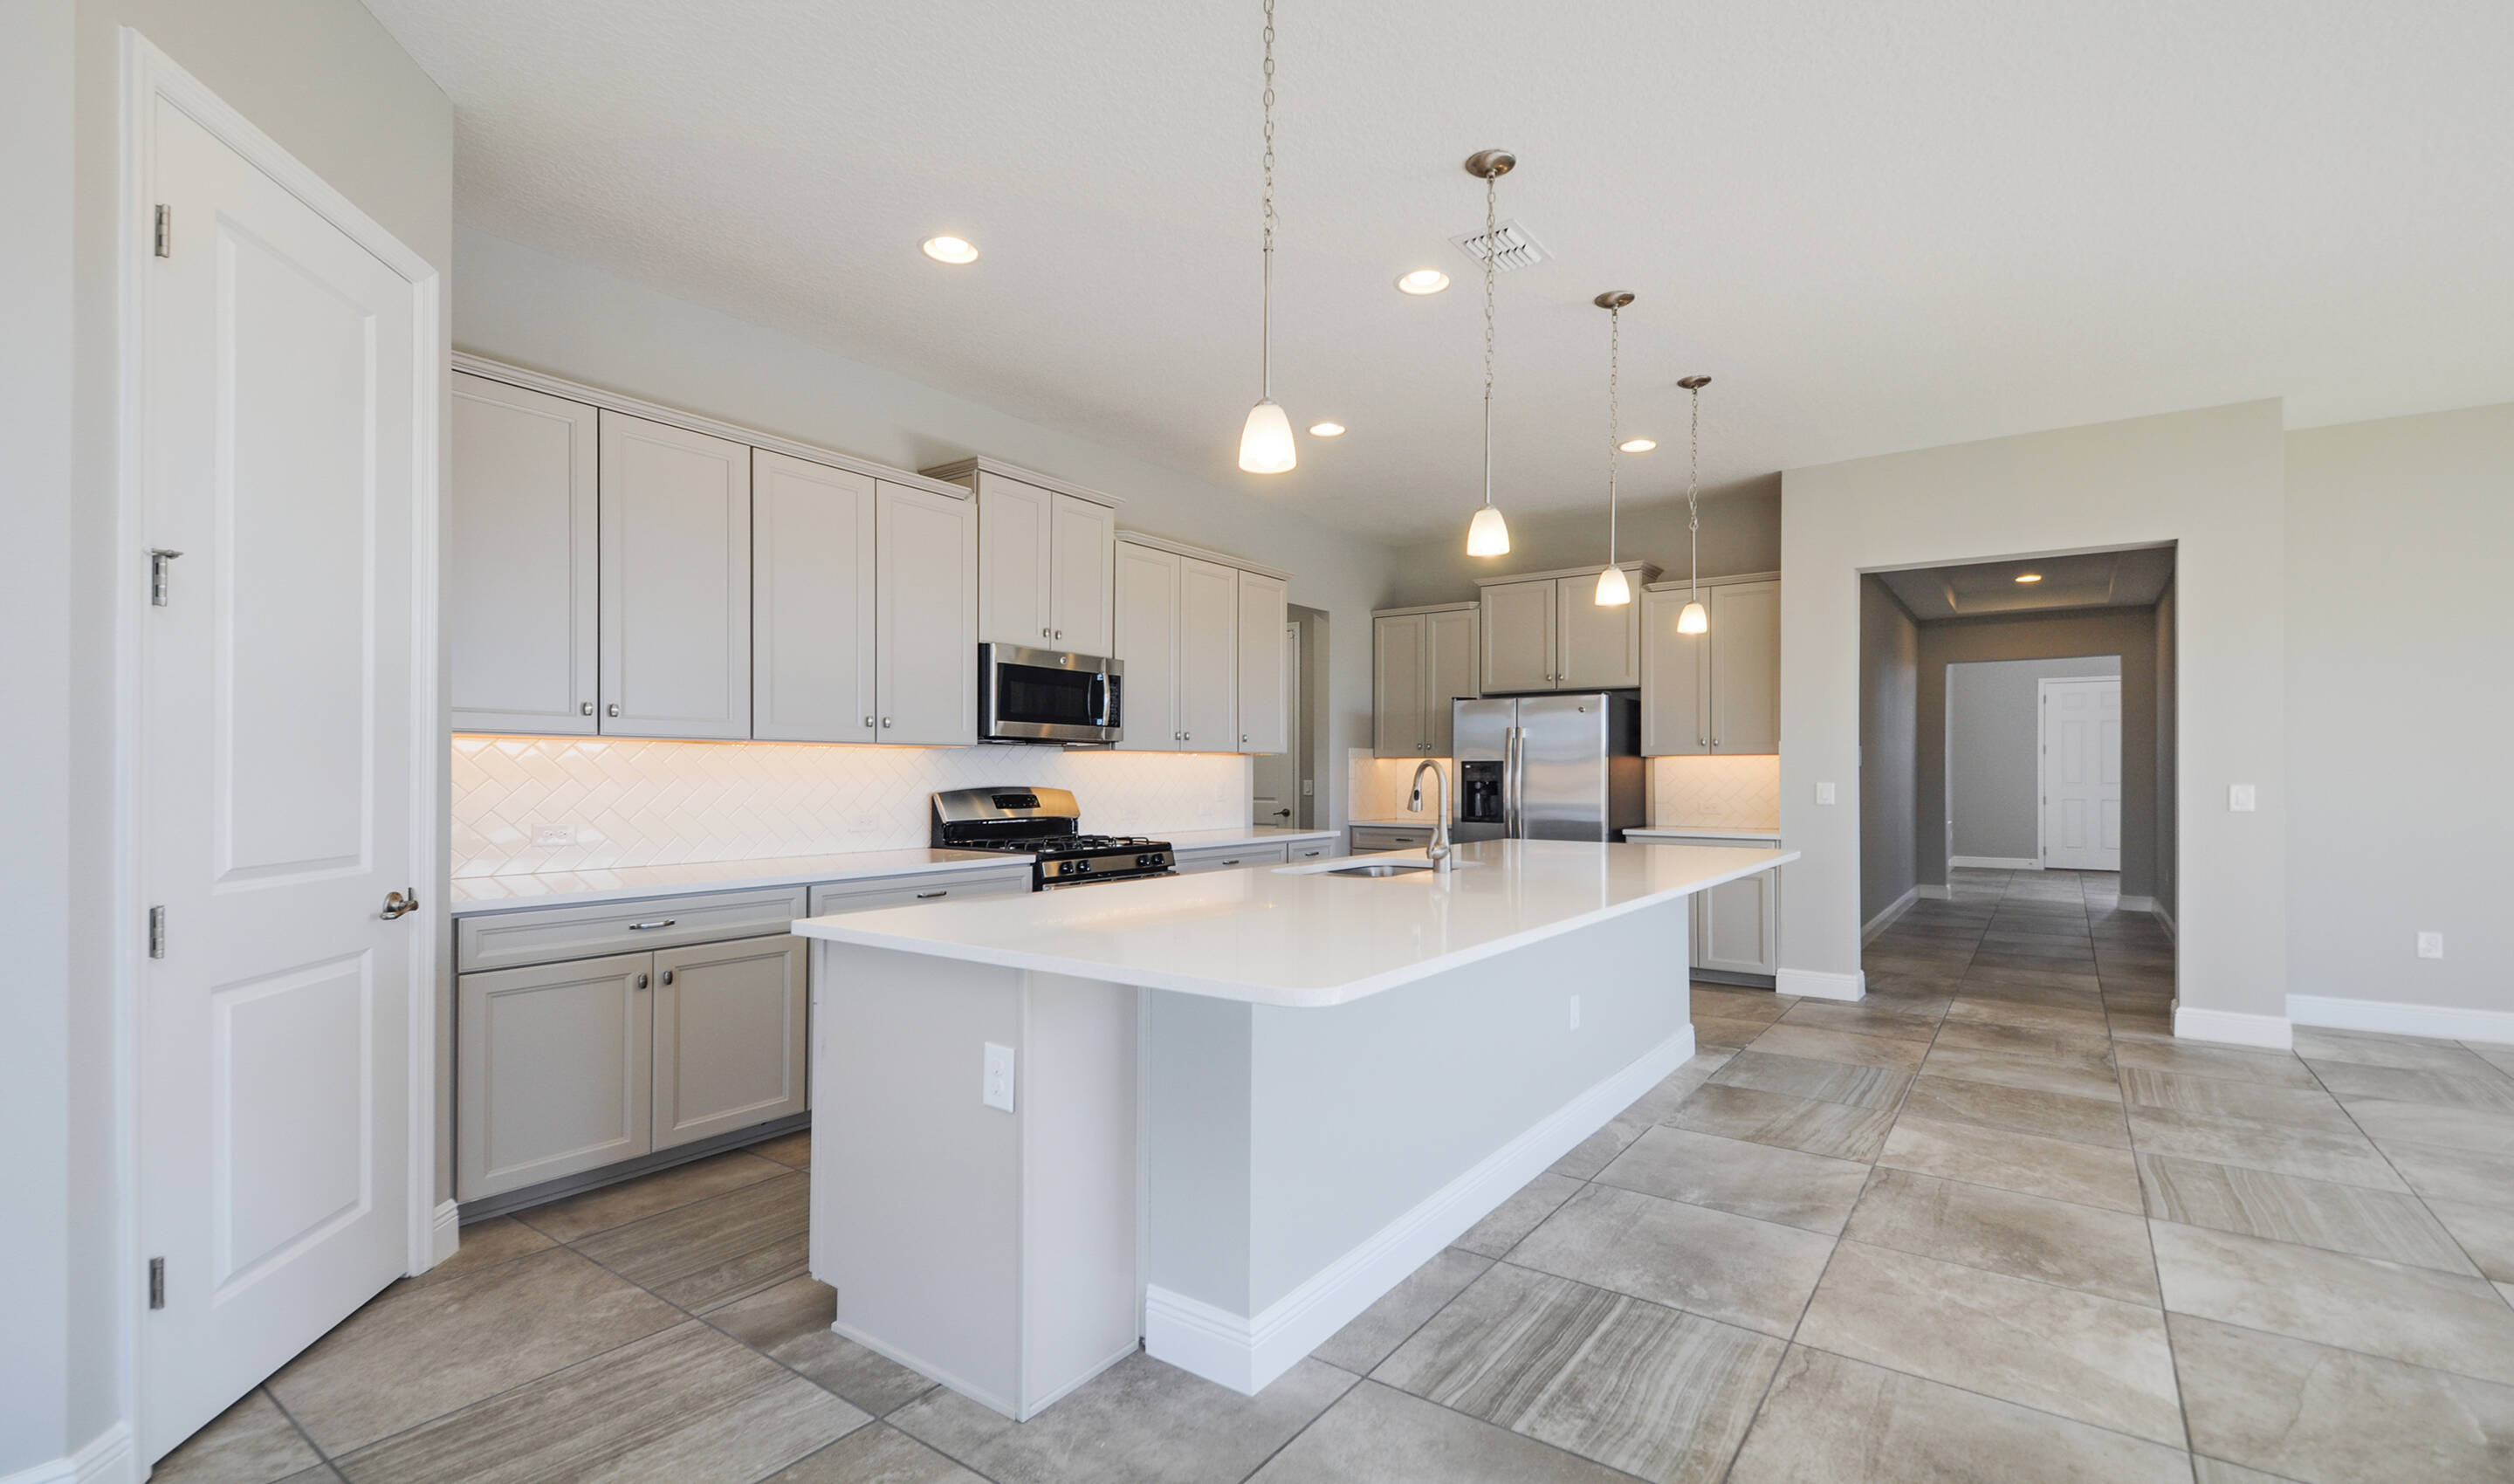 highlands at summerlake groves marisol dining area quick move in winter garden florida